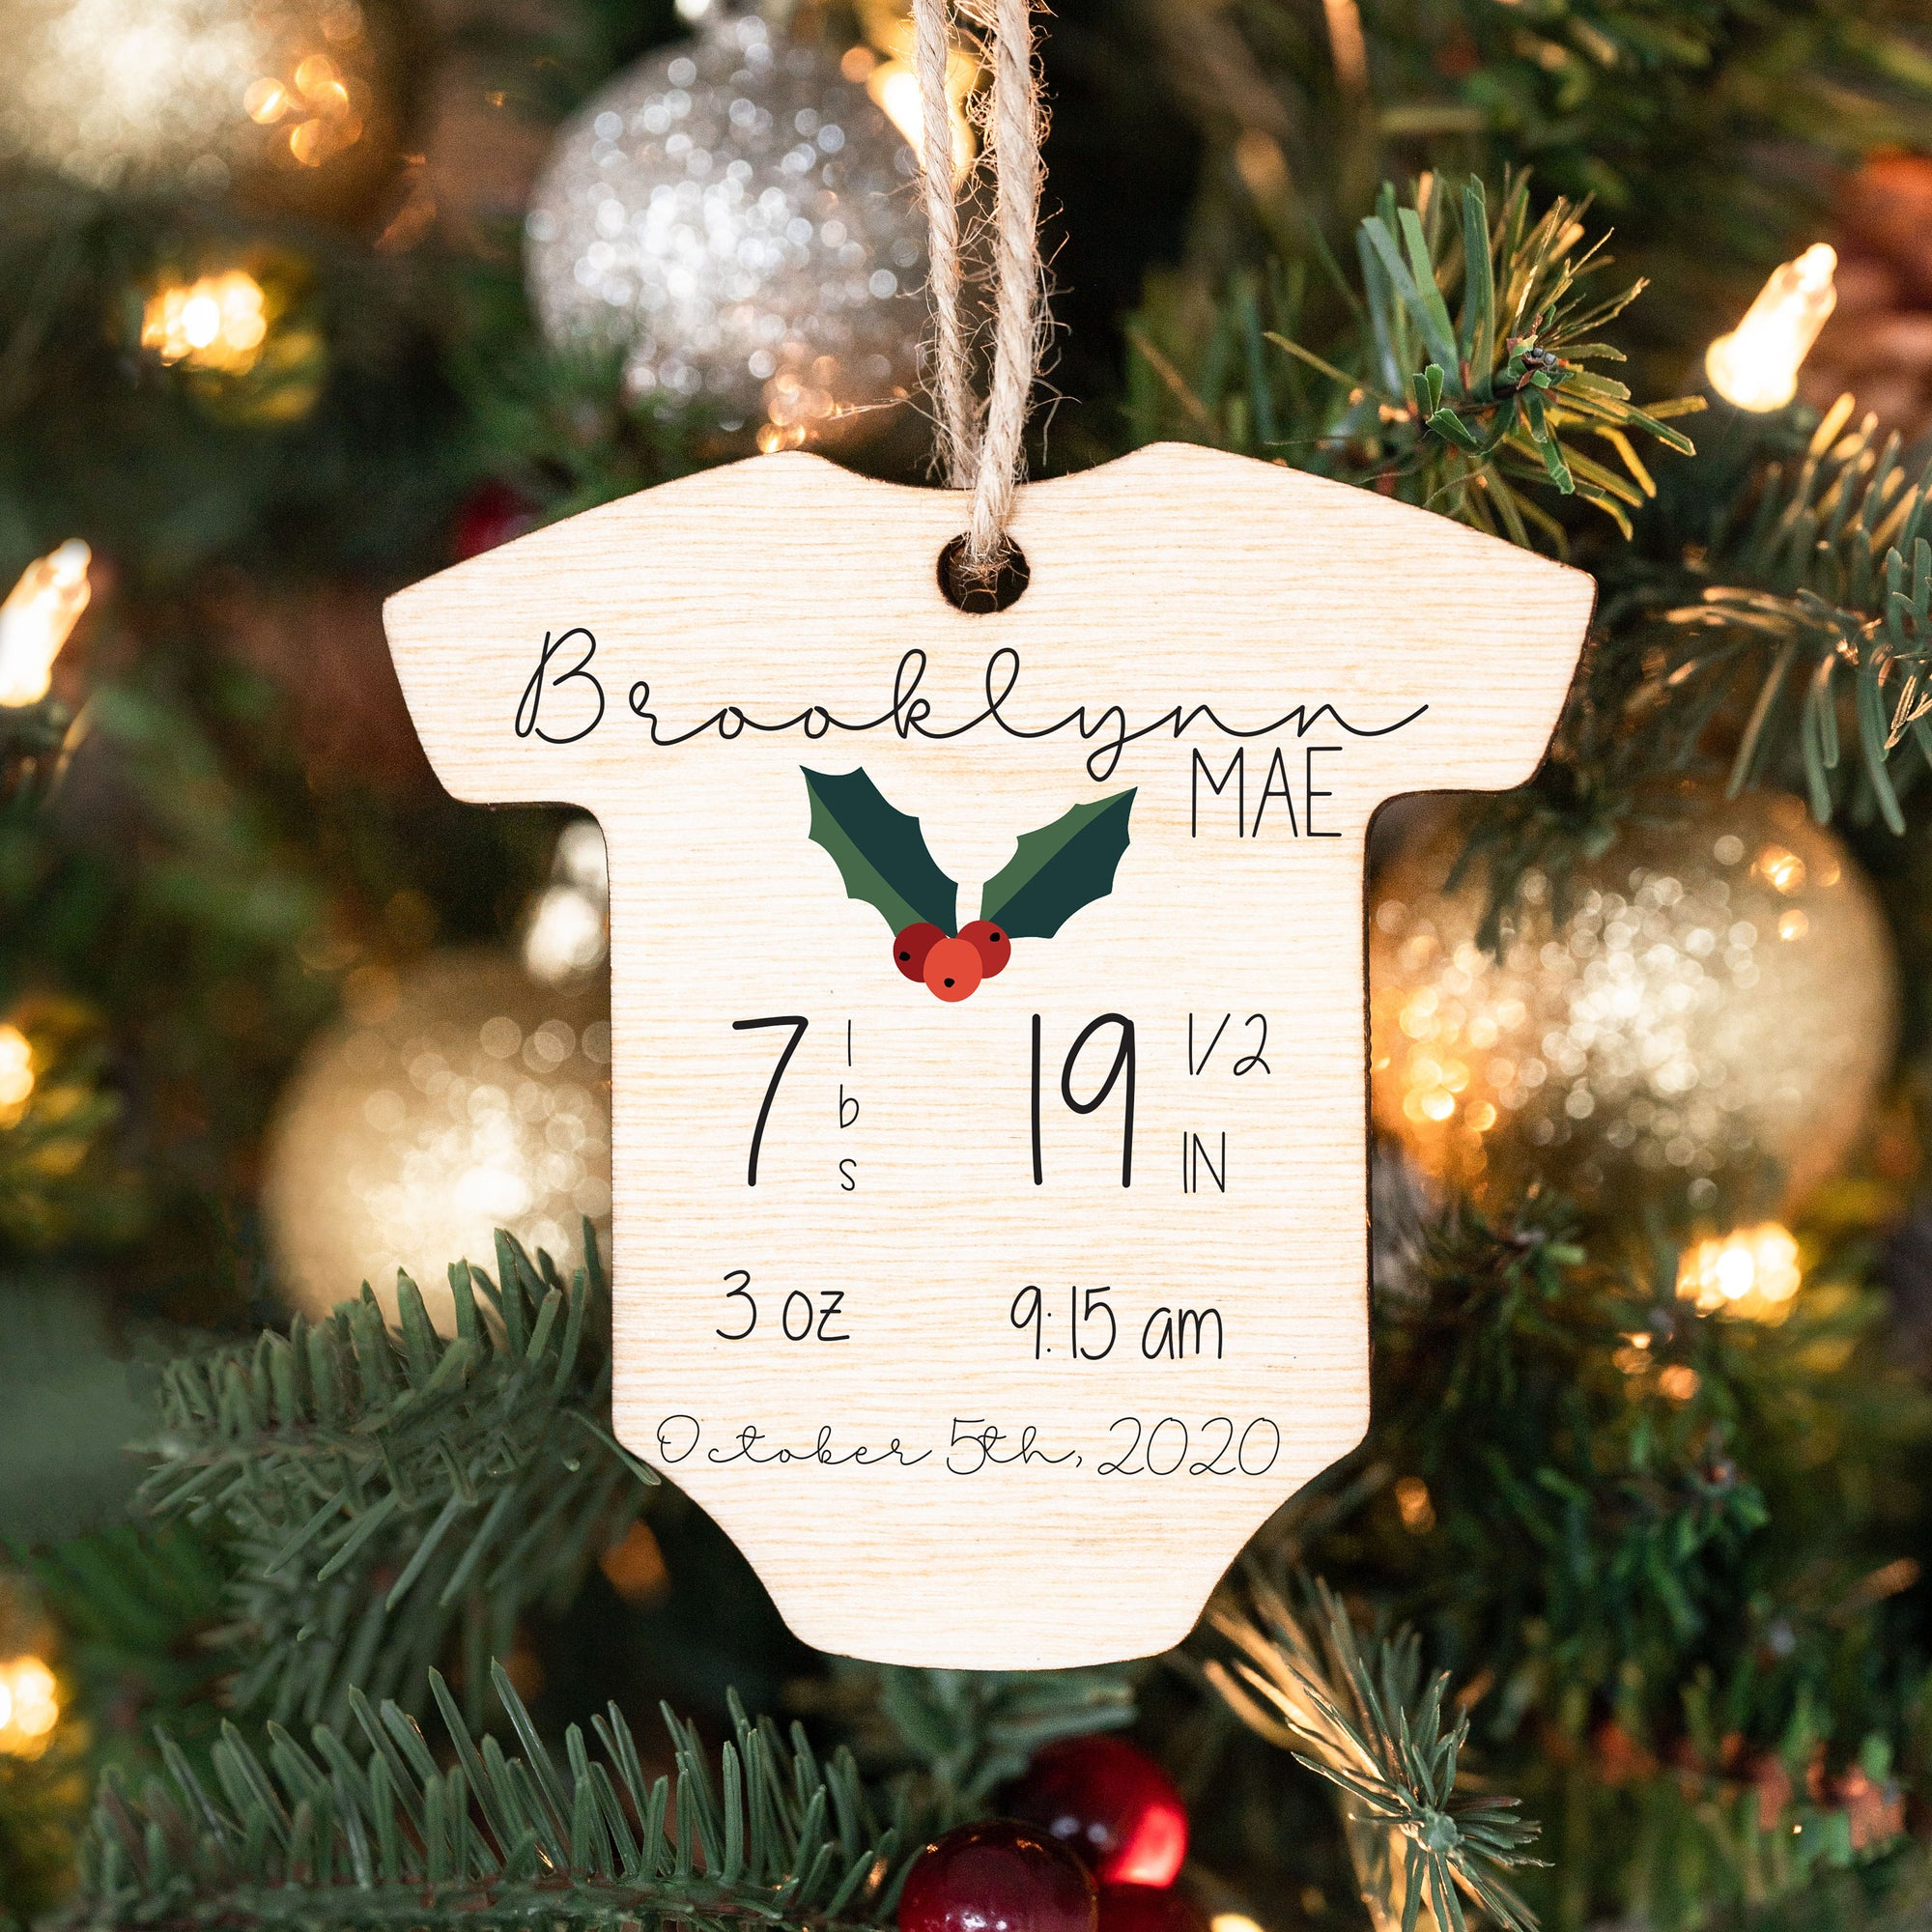 Baby's First Christmas Ornament, Personalized Wood Christmas Ornaments, Birth Announcement Onesie Ornaments, First Christmas Baby